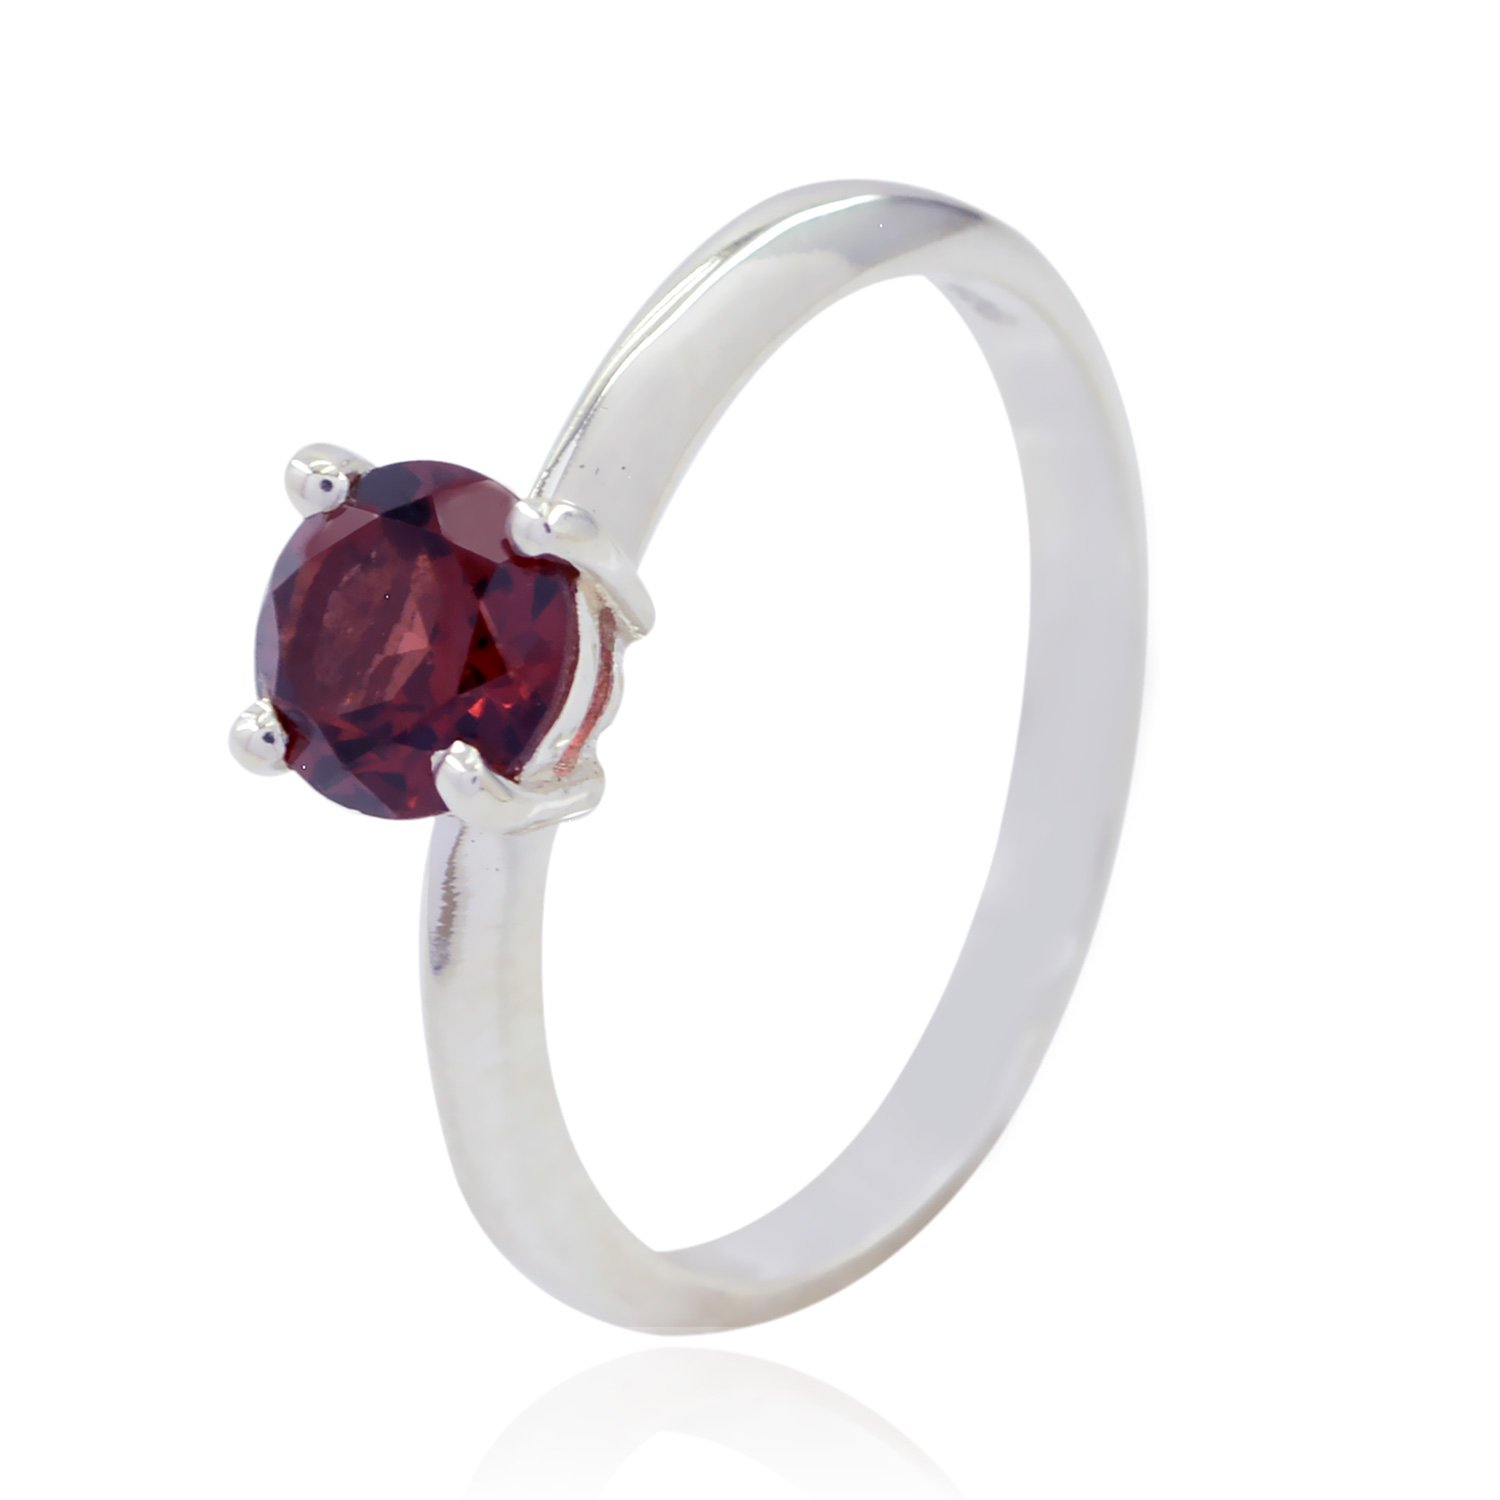 925 Sterling Silver Red Garnet Natural Gemstone Ring Natural Gemstone Round Faceted Garnet Rings top Jewelry fine Item Gift for Fathers Day top Ring